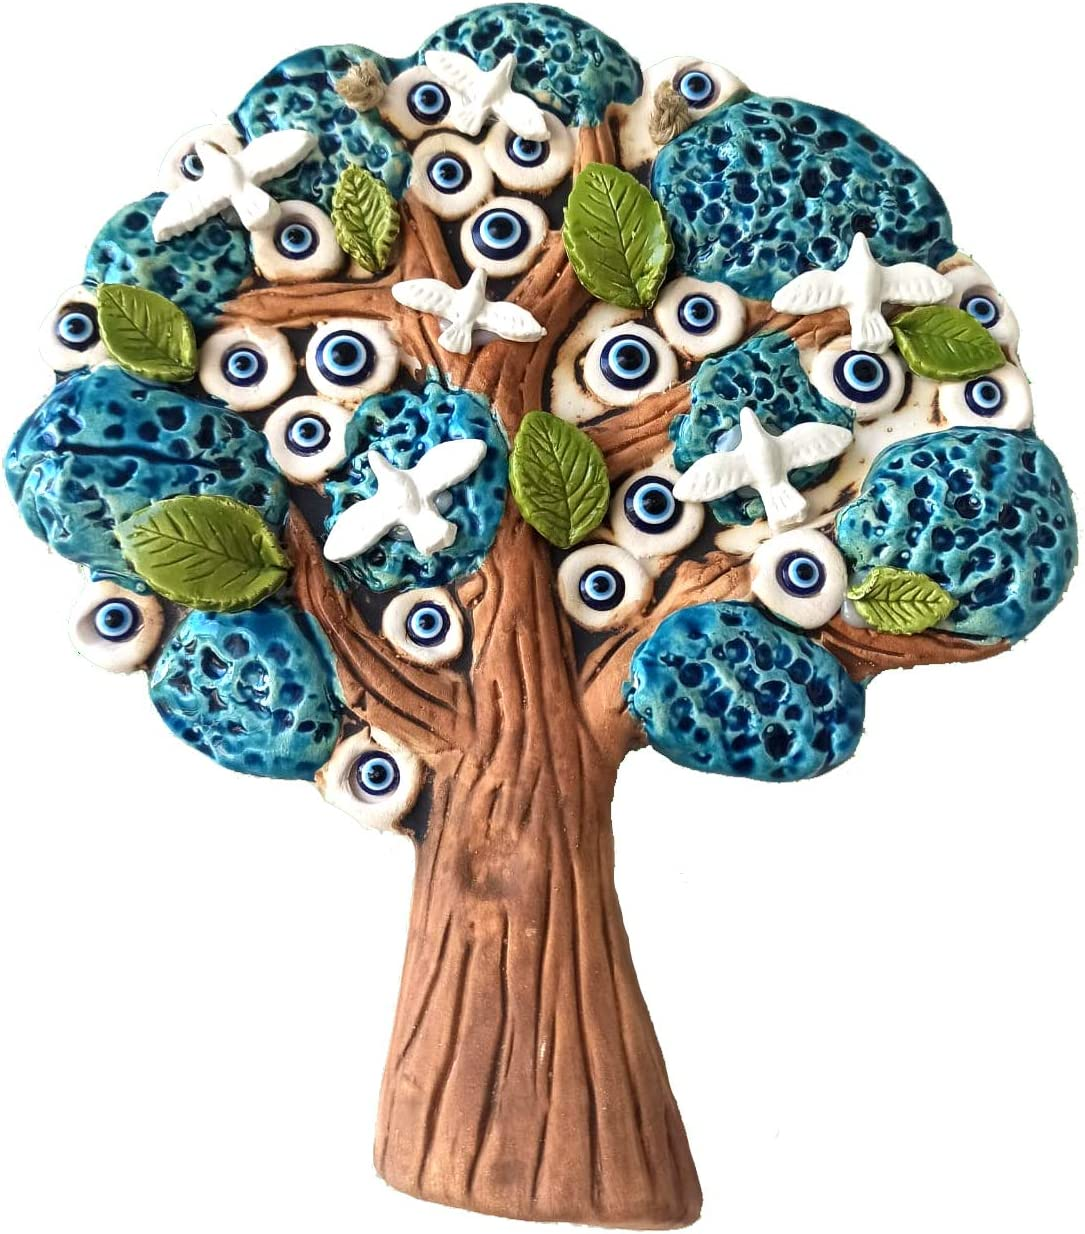 Tree of Life Ceramic Wall Art Decor Sculpture Hanging Wall Decor Rustic Wall Decorations Evil Eye Wall Hanging Ornament Pottery Wall Art Gift for Home Decoration Indoor Outdoor Great Home Gifts